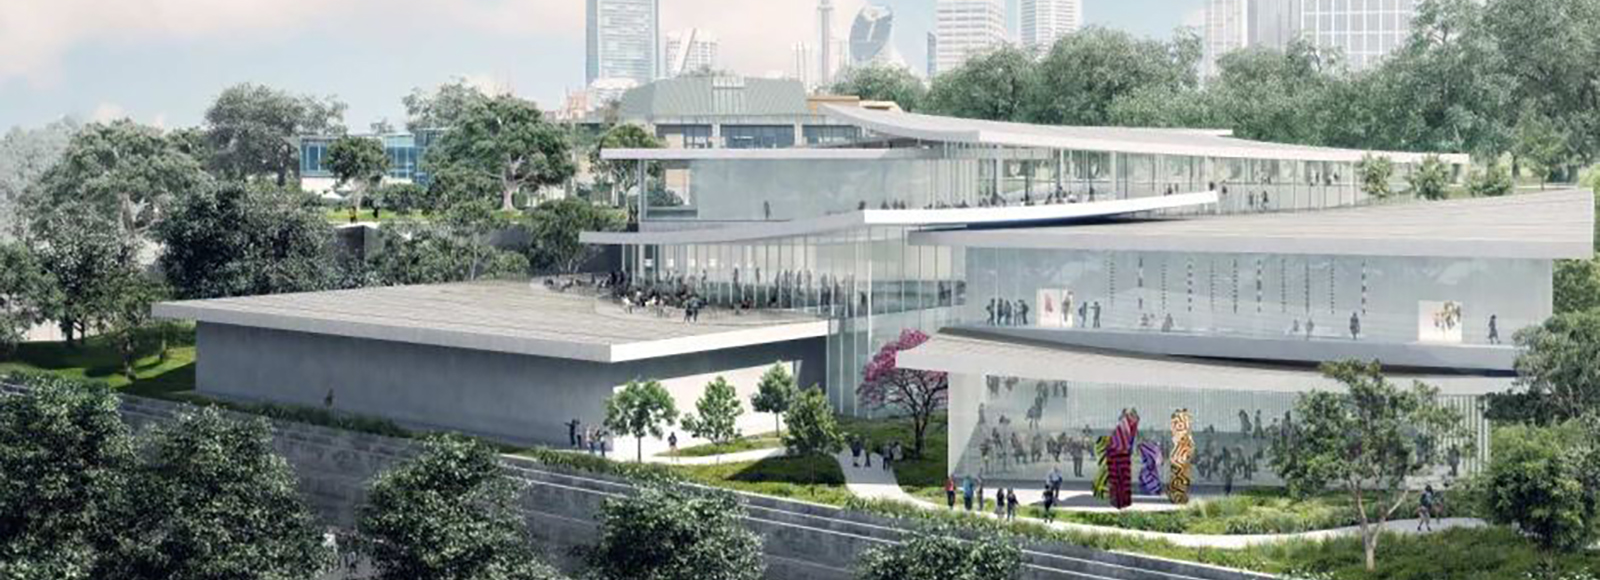 An artist's impression of the Sydney Modern project. Photo: Art Gallery of NSW and SANAA for Sydney Modern expansion